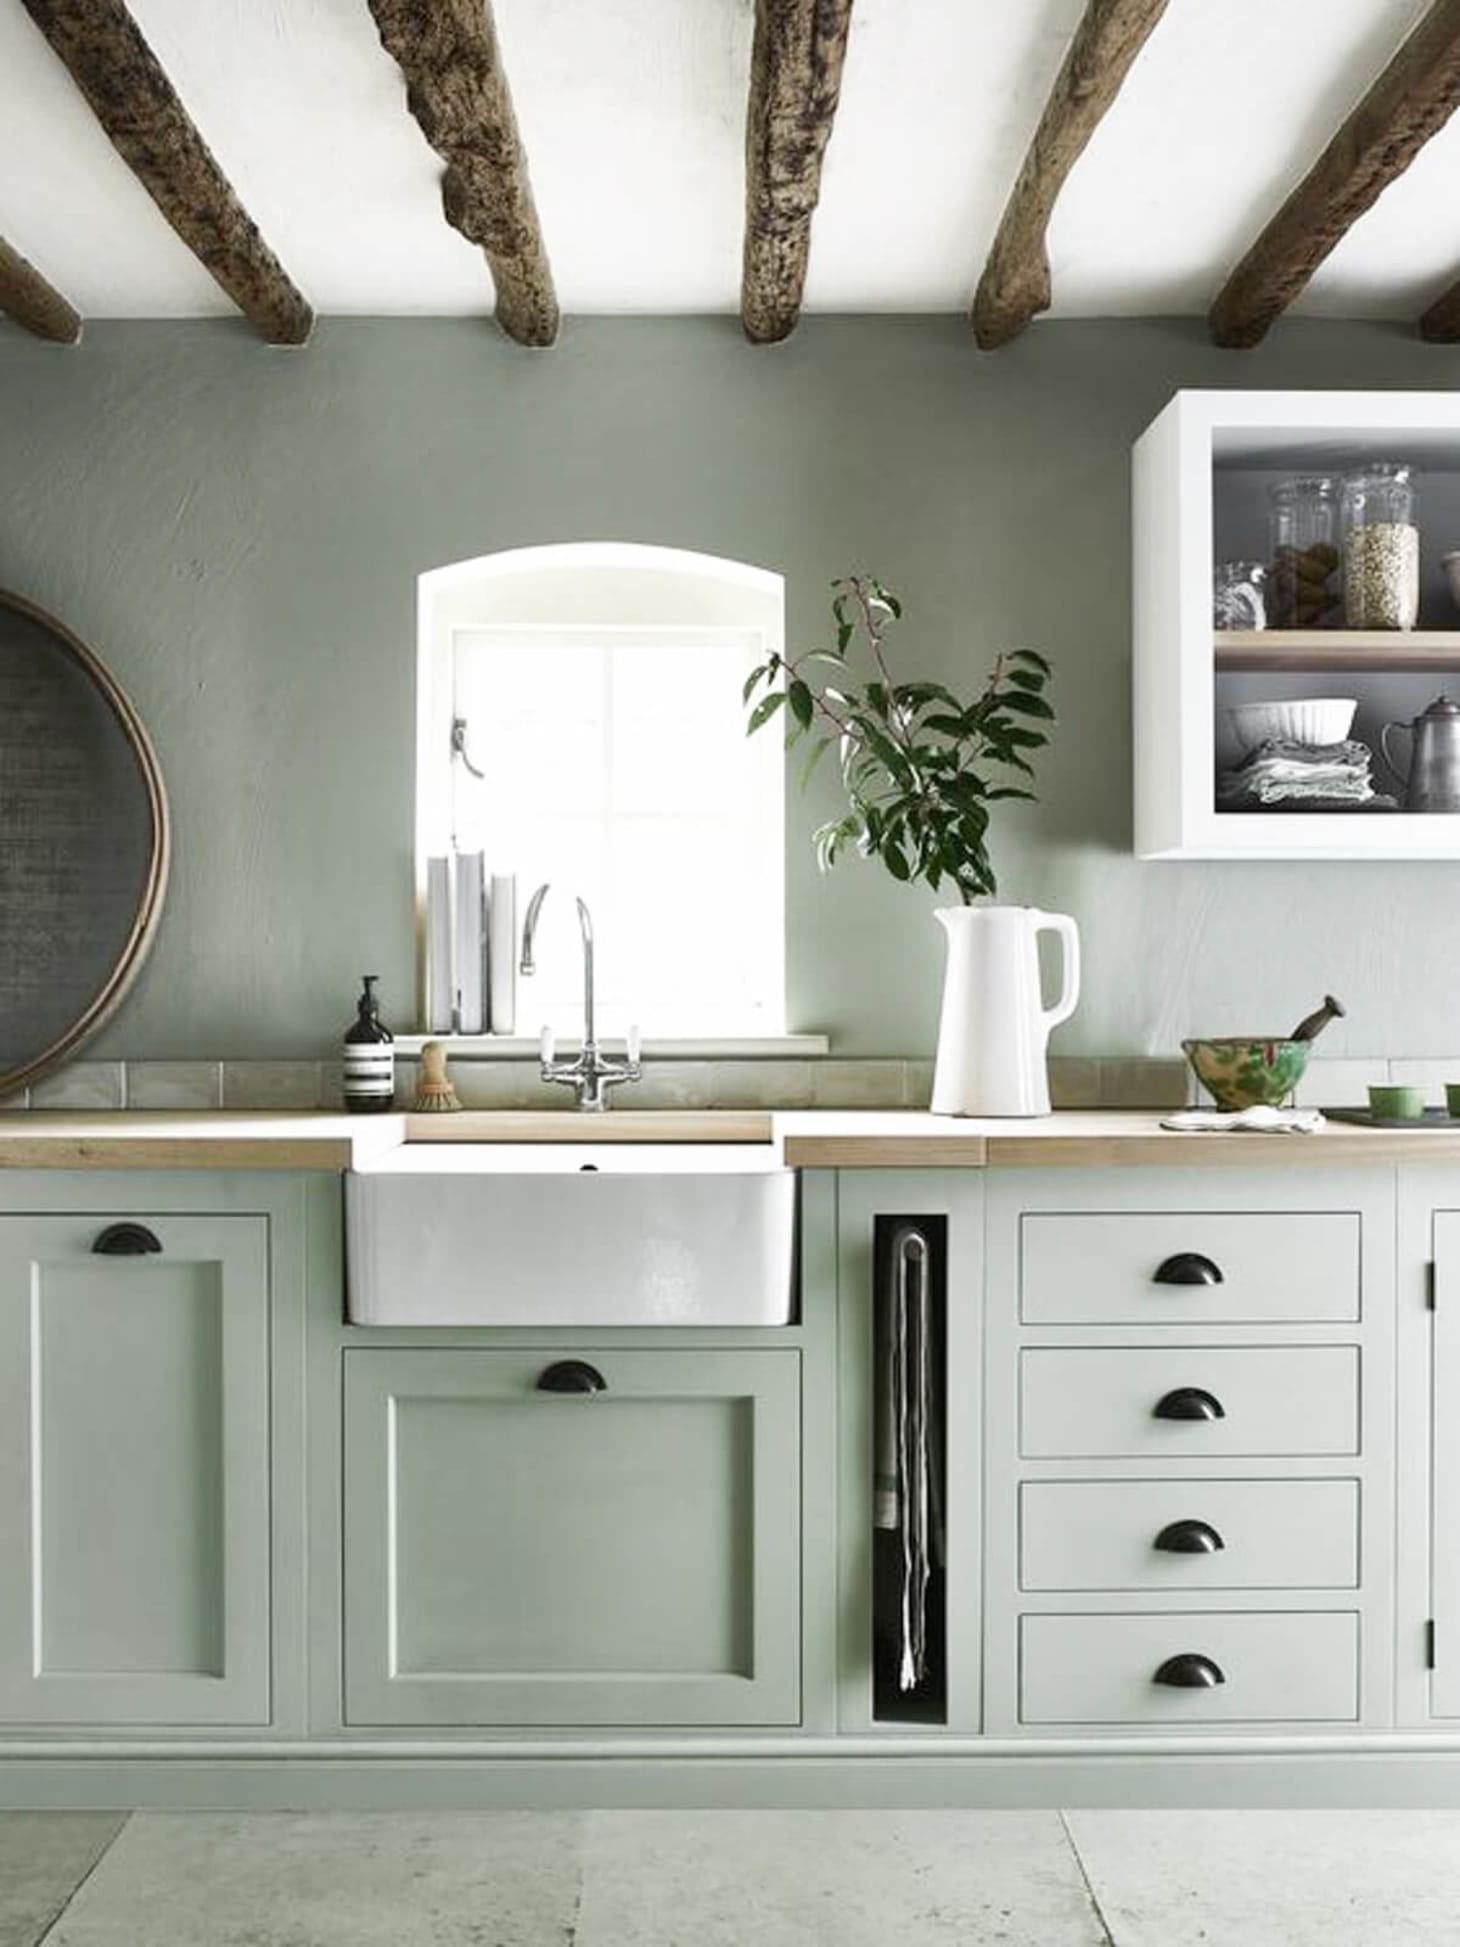 2018 Paint Trends - Kitchen Cabinet Color Predictions ...